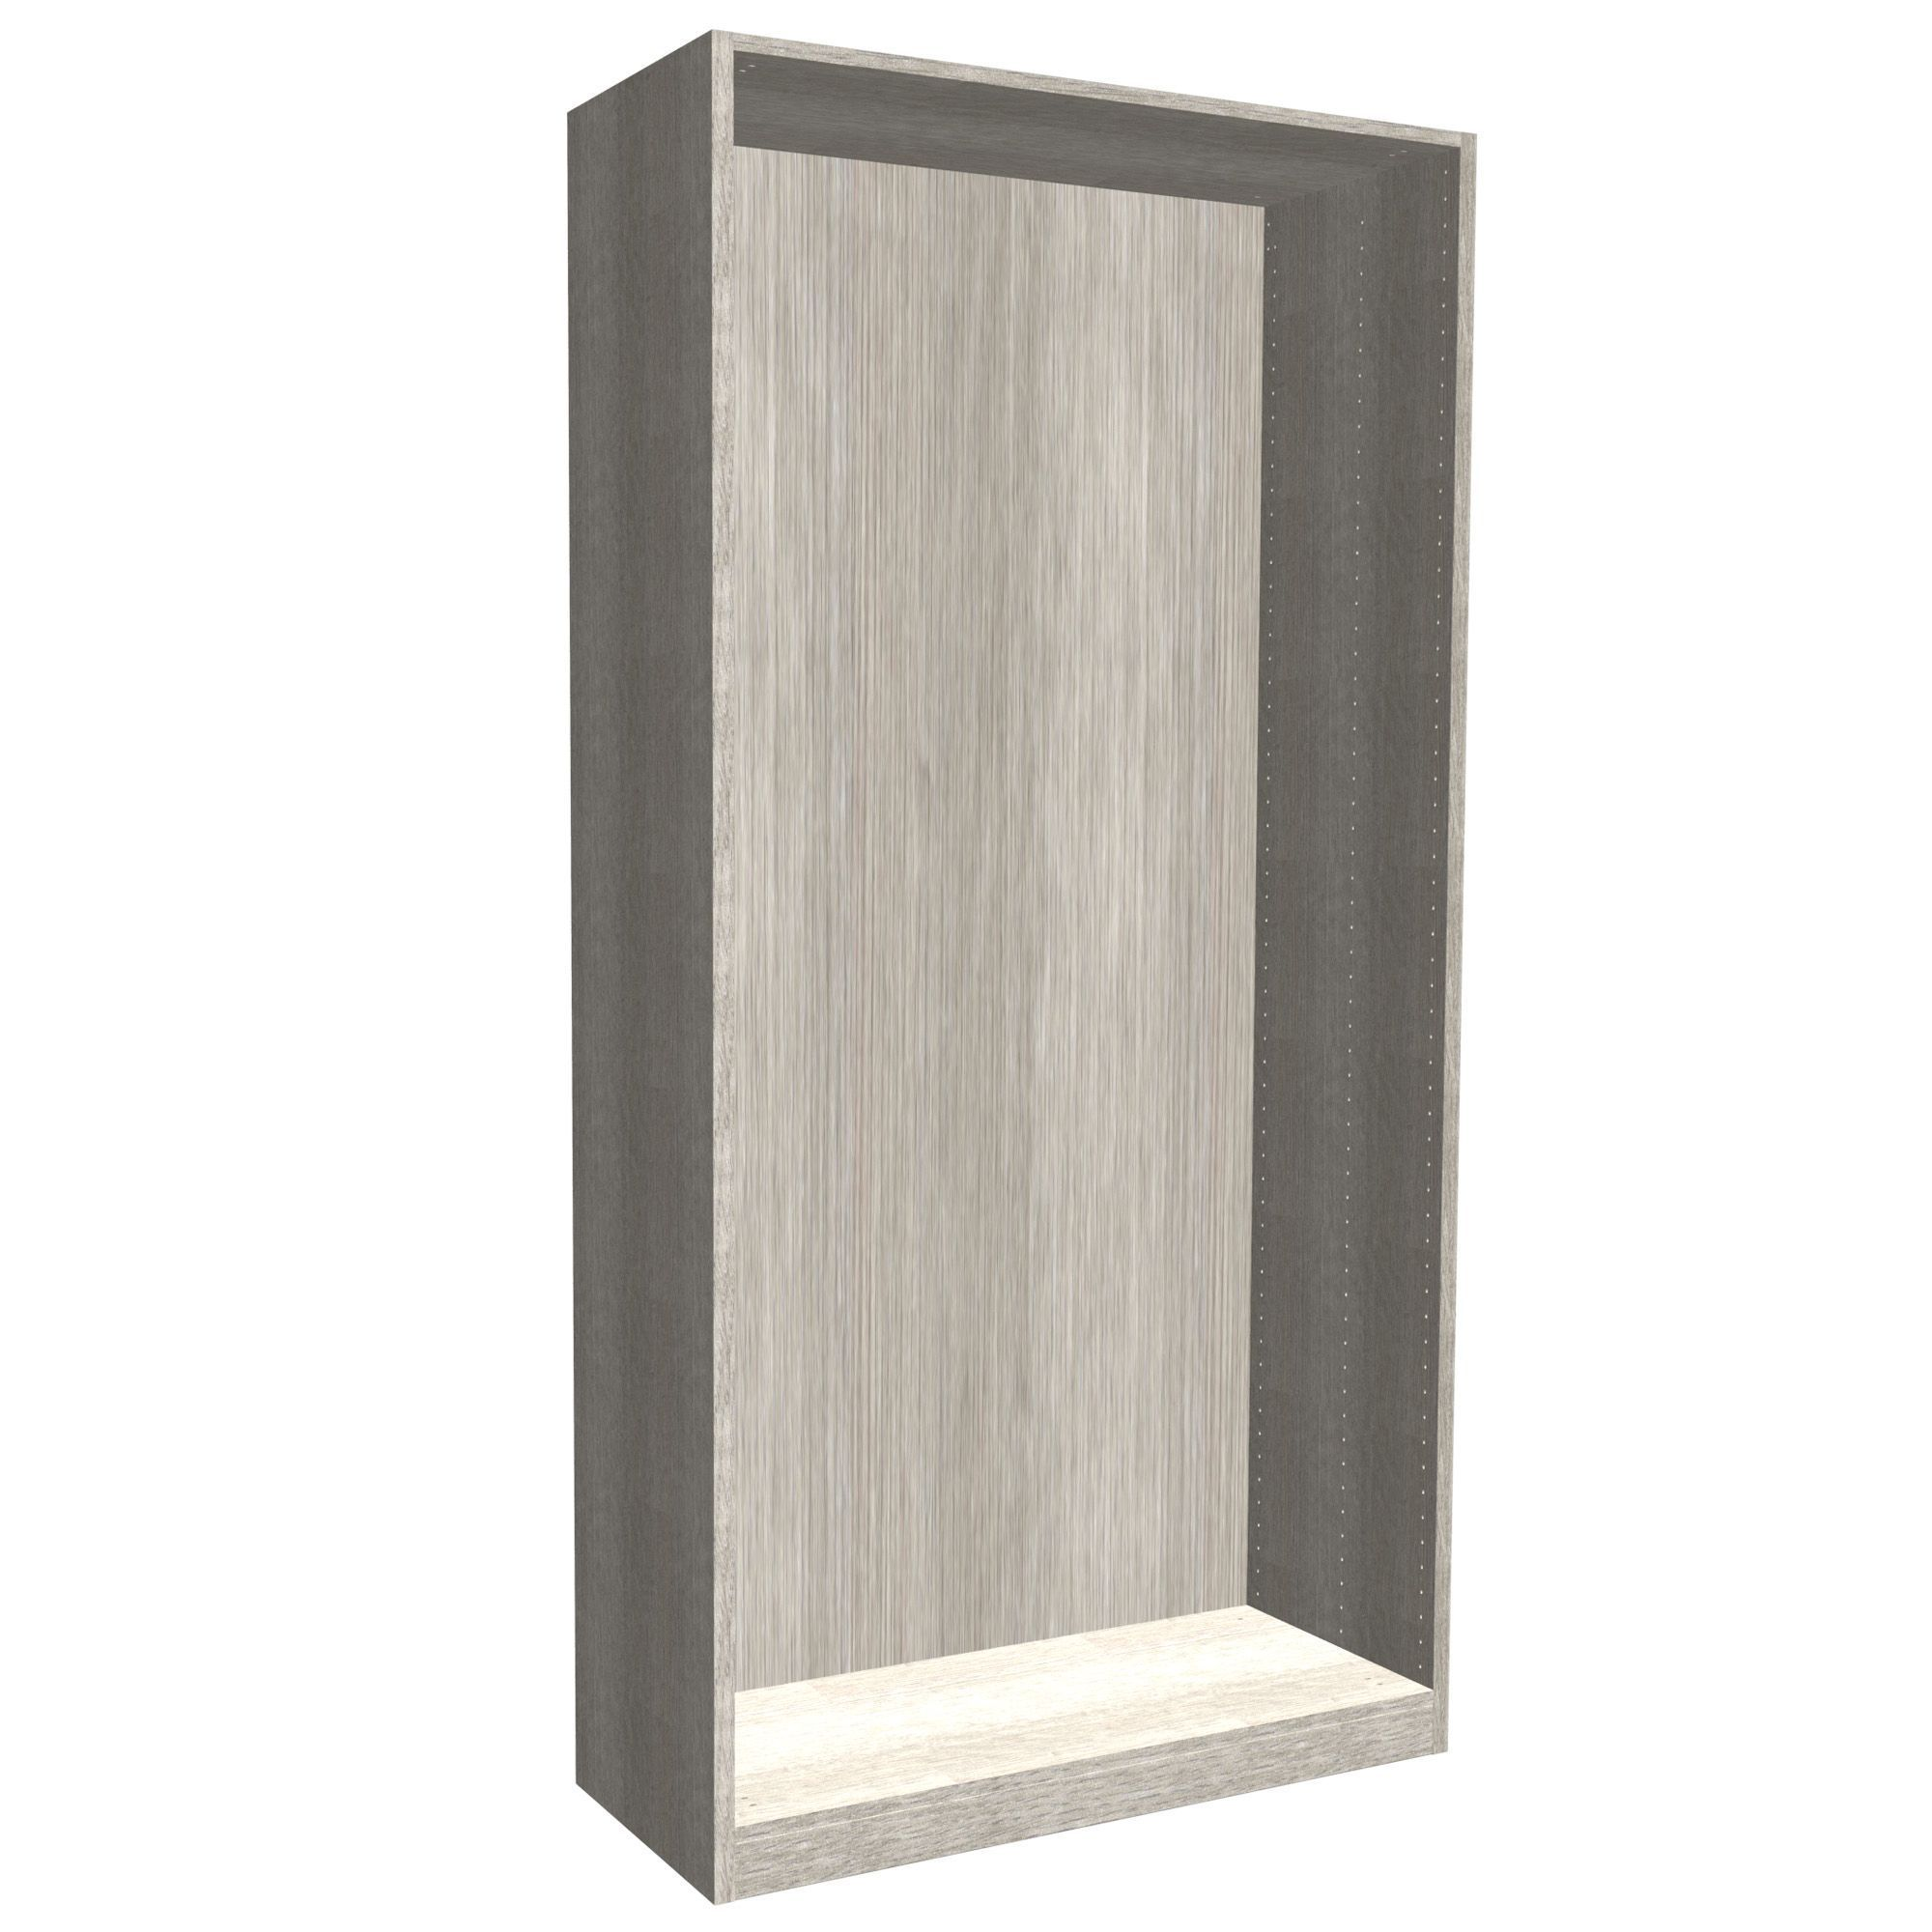 wardrobe to cor lb light is back d sopheap product this door notified home sliding stock blue sign get grey when furniture up in alfred